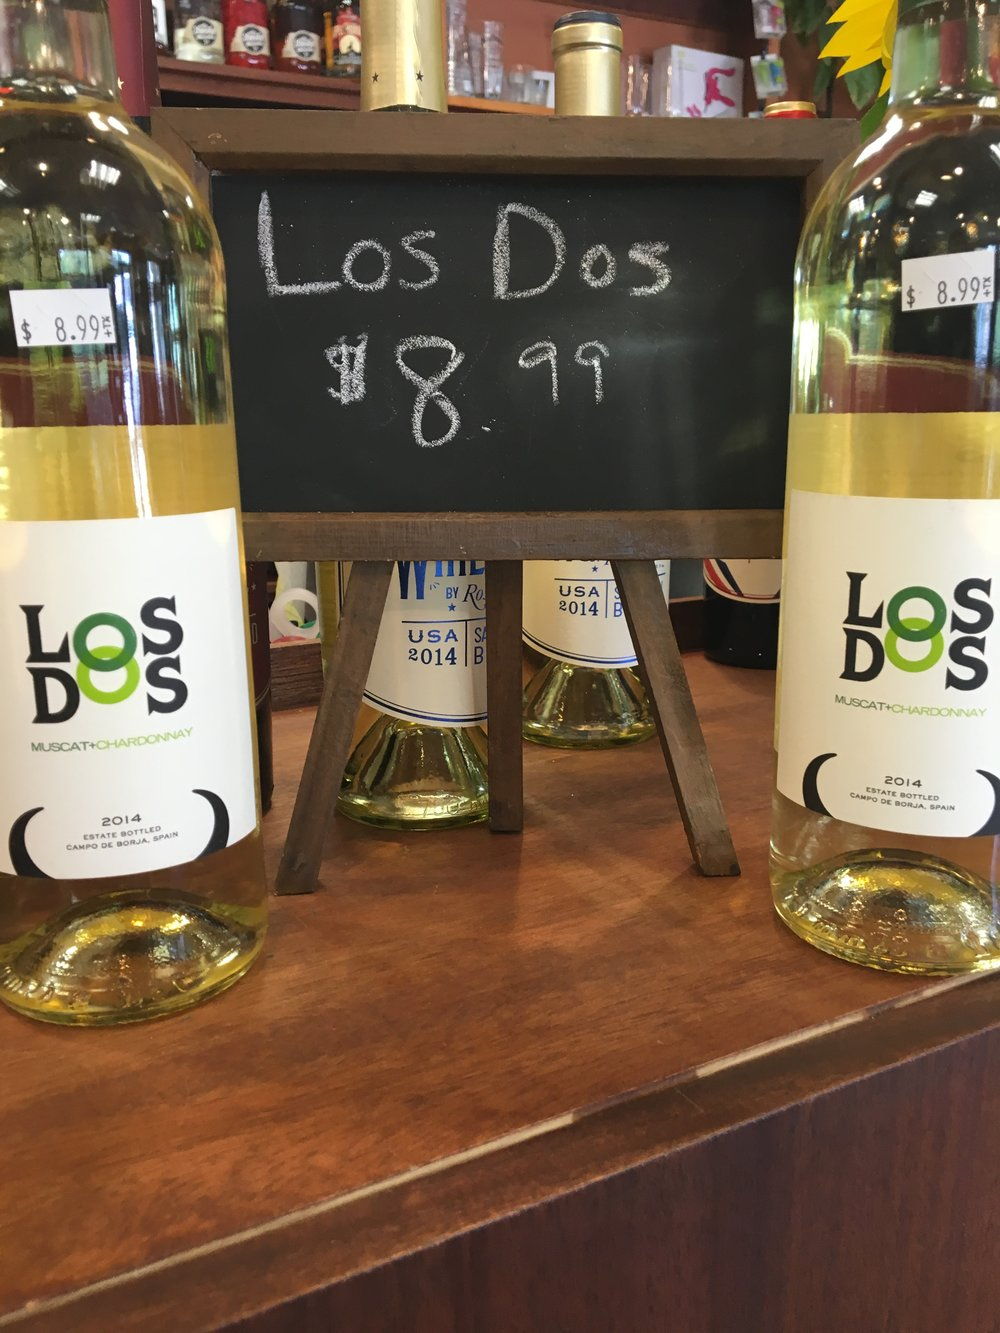 Los Dos Muscat/Chard $8.99